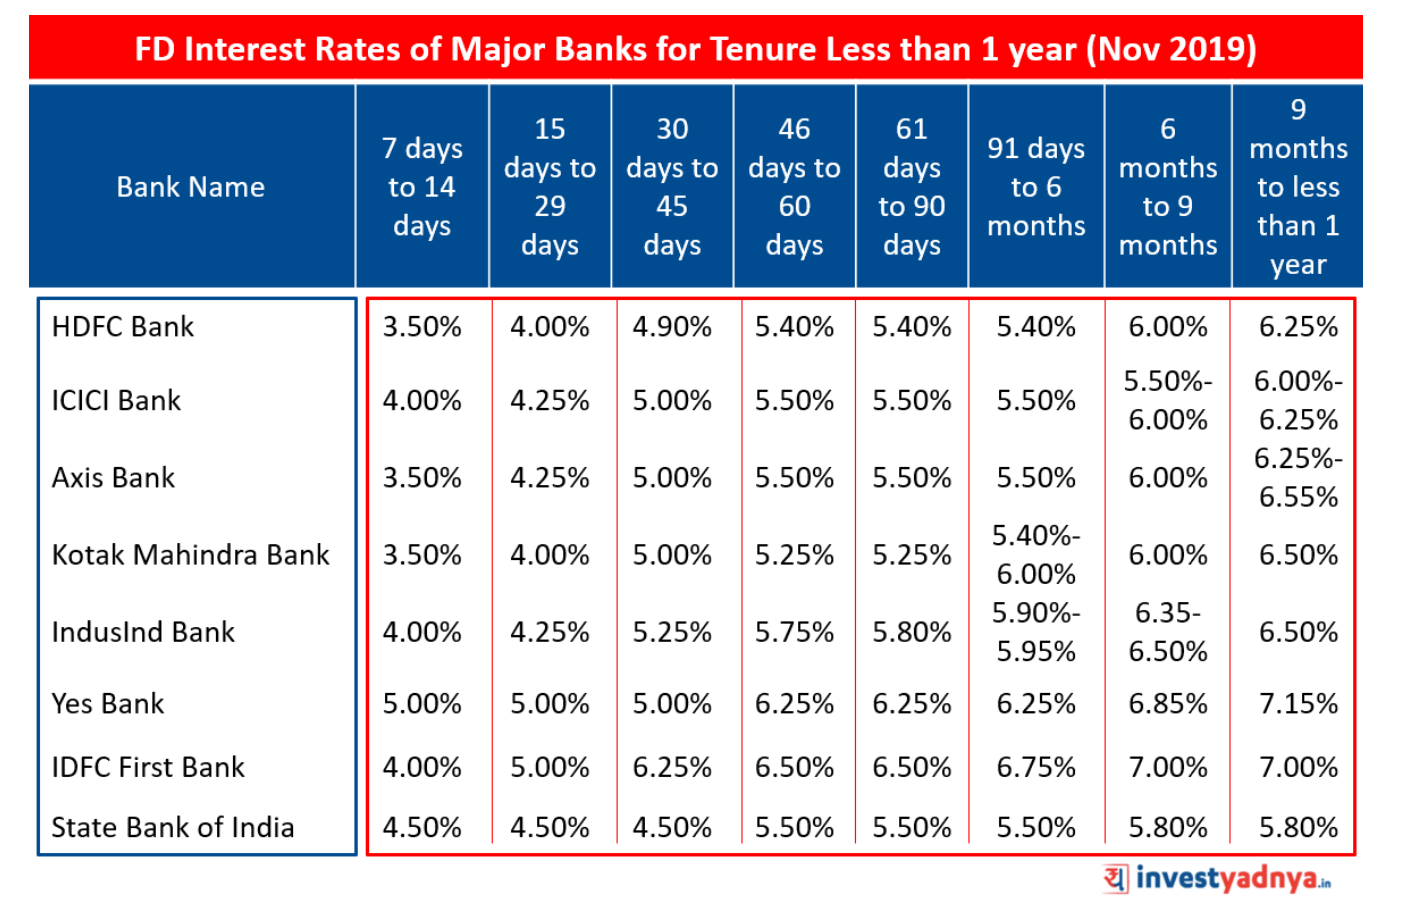 FD Interest Rates of Major Banks for Tenure Less than 1 year (Nov 2019)